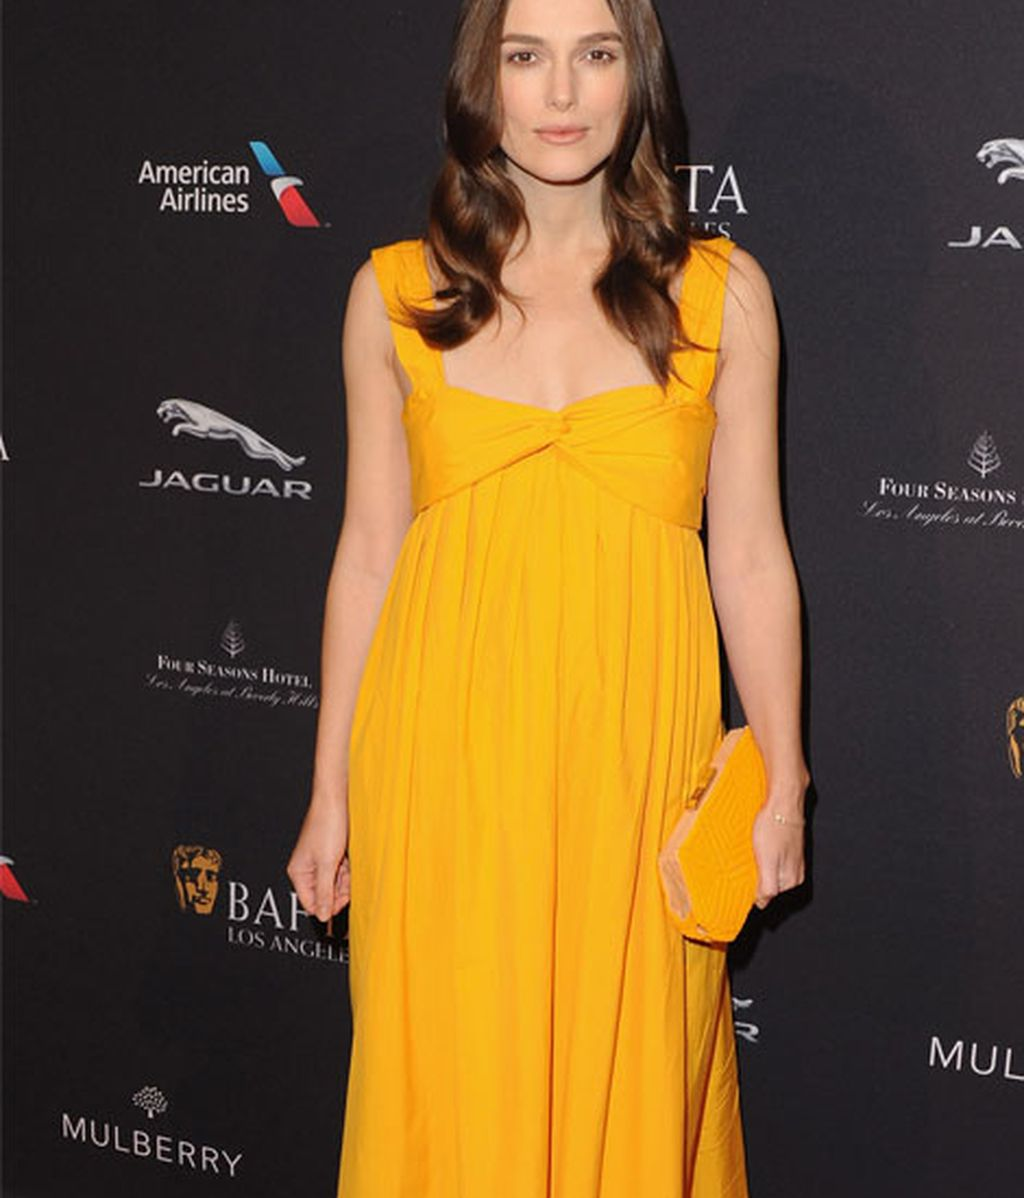 5. Bafta Tea Party